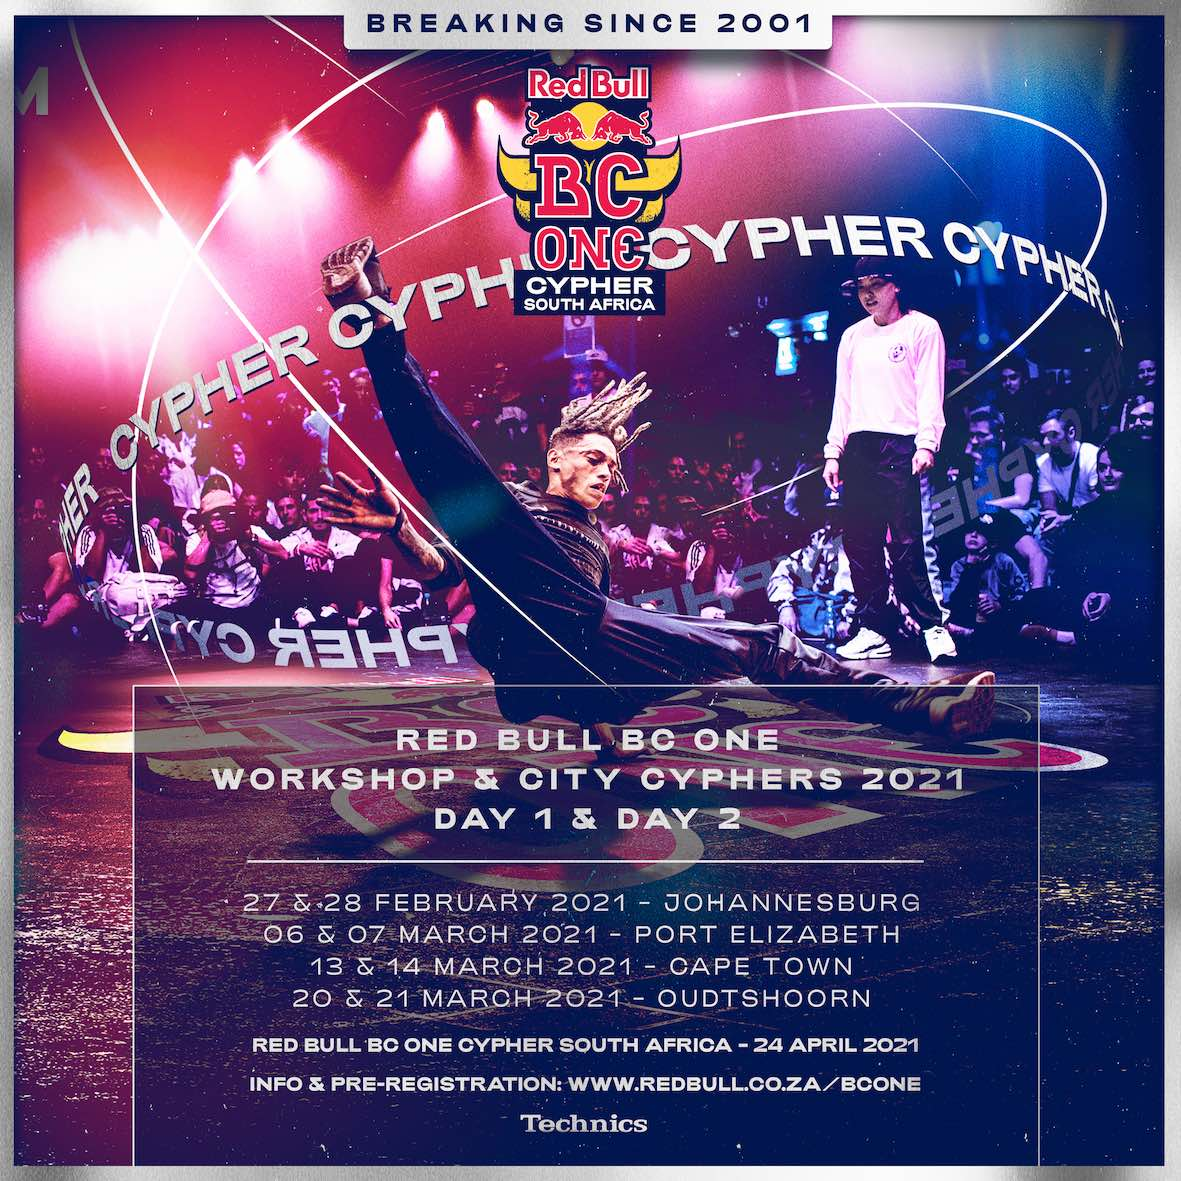 Details for the four Red Bull BC Onequalifying cypher and workshop weekends